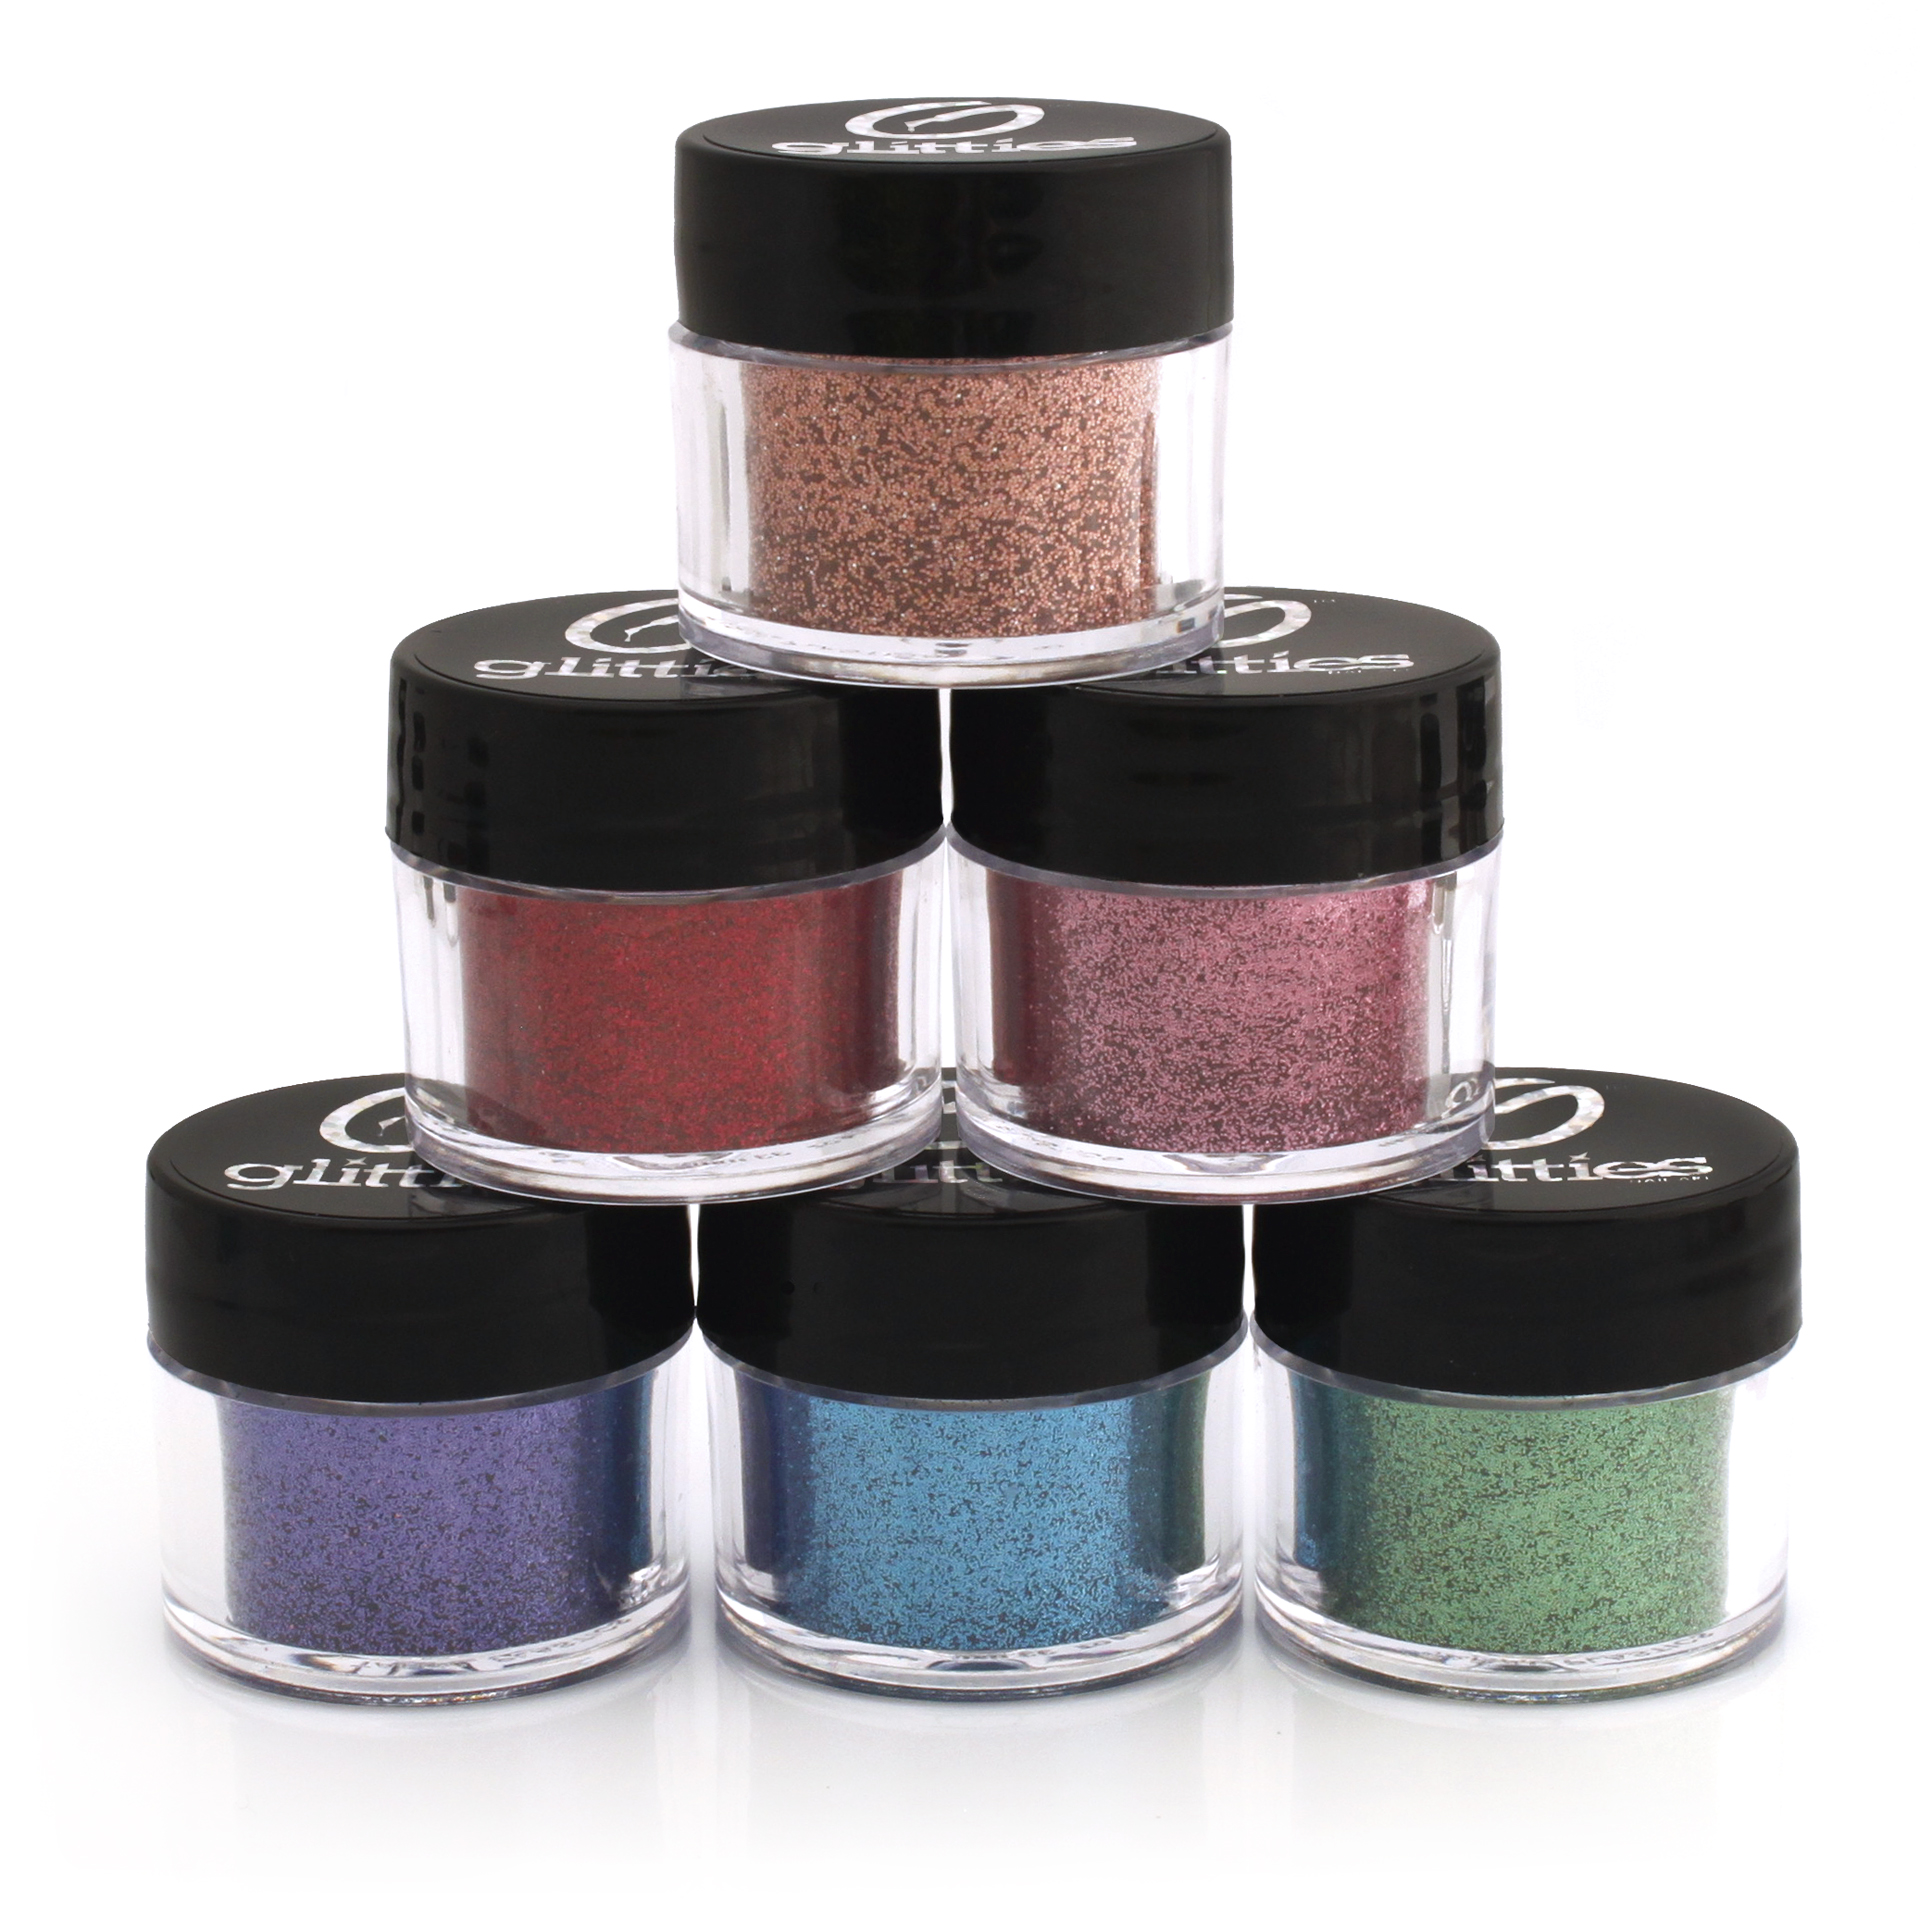 Cosmetic Grade 6 Pk Glitter Powder Kit - A Mix of Ultra Fine and Fine Glitter Powder Safe for Skin! Great forMakeup, Tattoos, Face, Lips, Soap, Lotion, & Nail Art - Made in the USA! (10 Gram Jars)